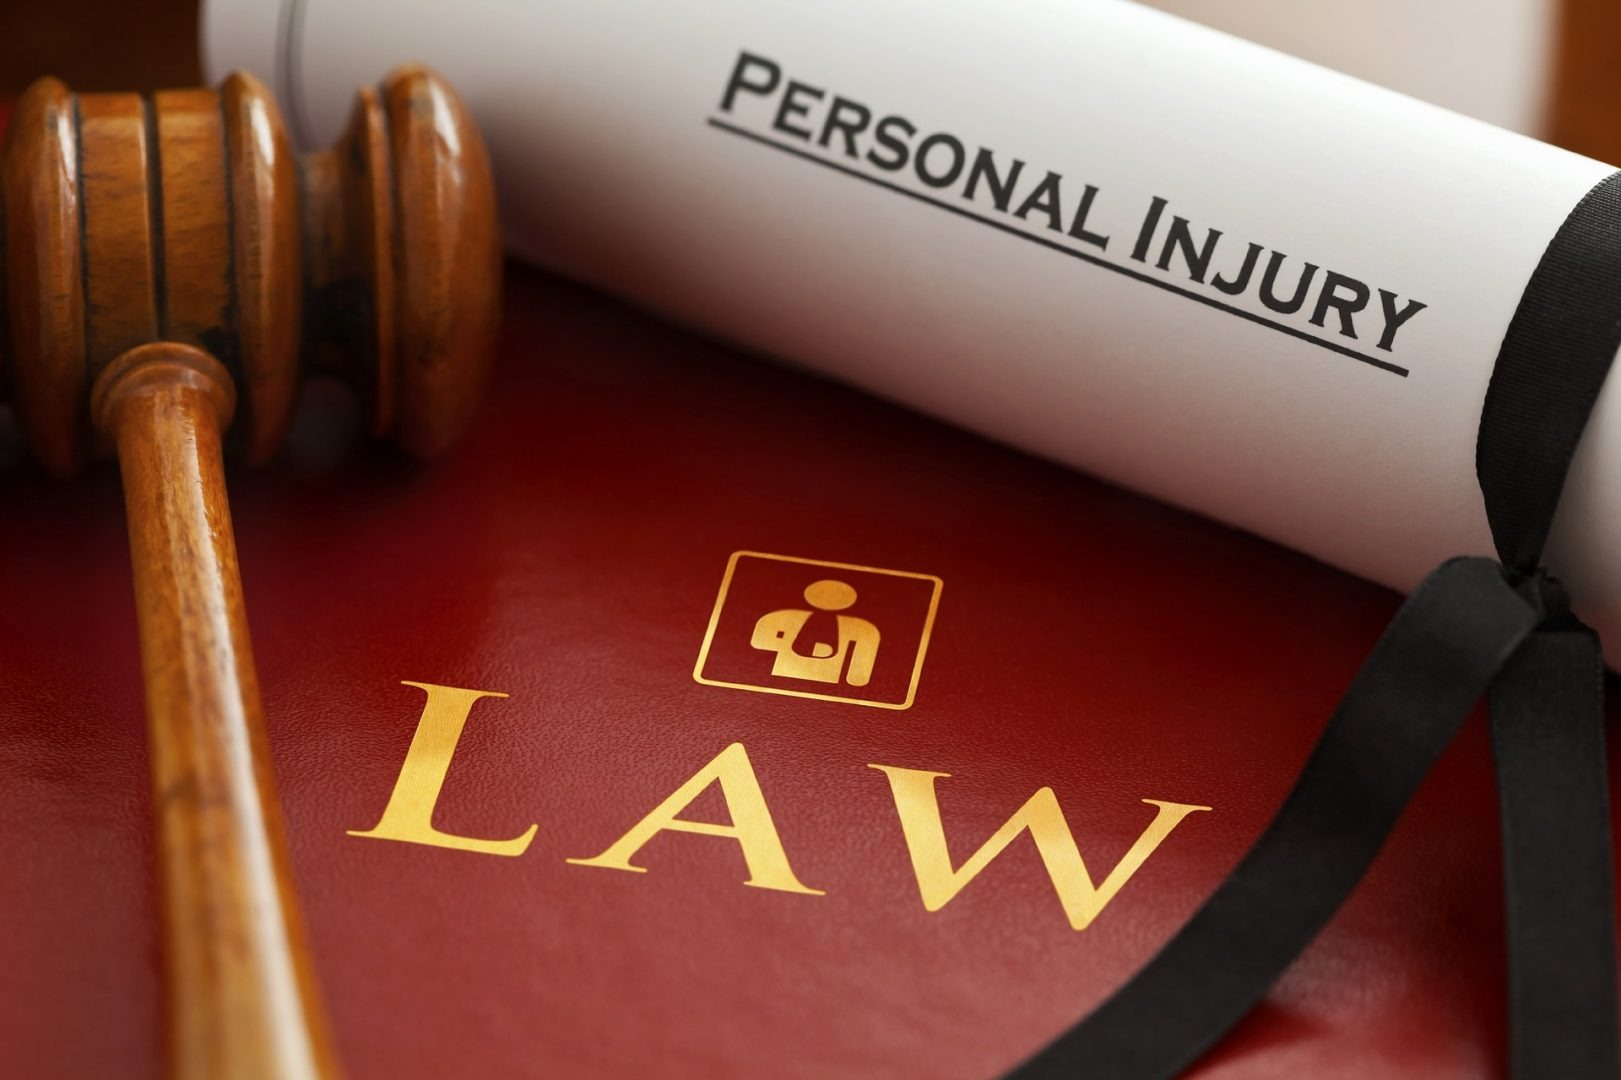 car accident lawyer norfolk, norfolk car accident attorney